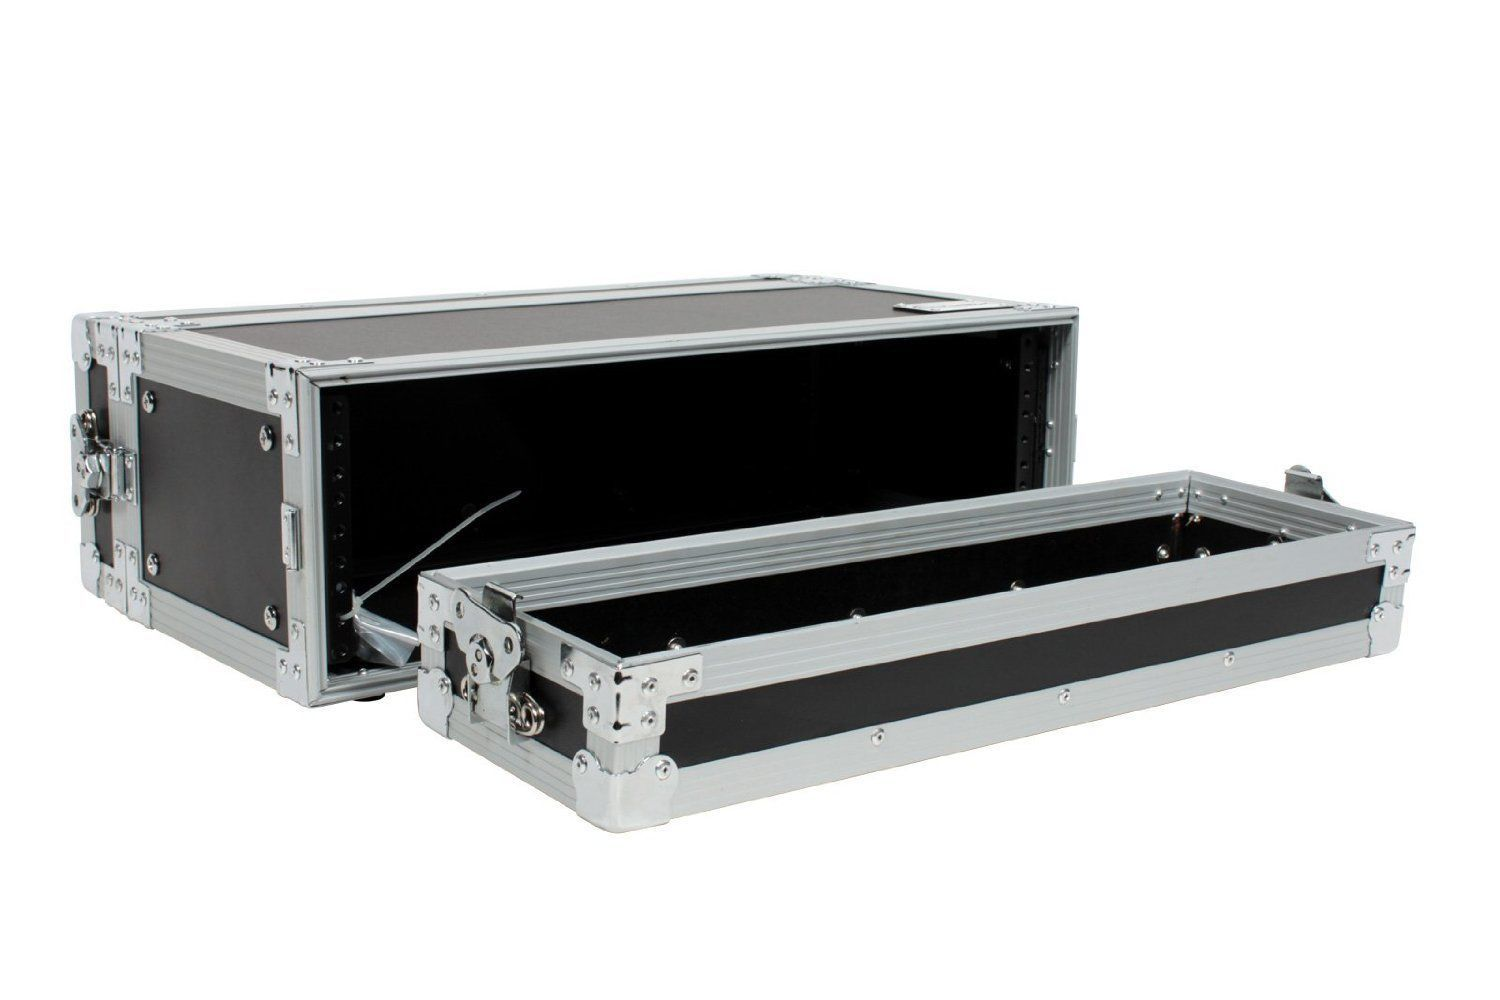 XSPRO 3 Unit Rack Case ATA B Stock